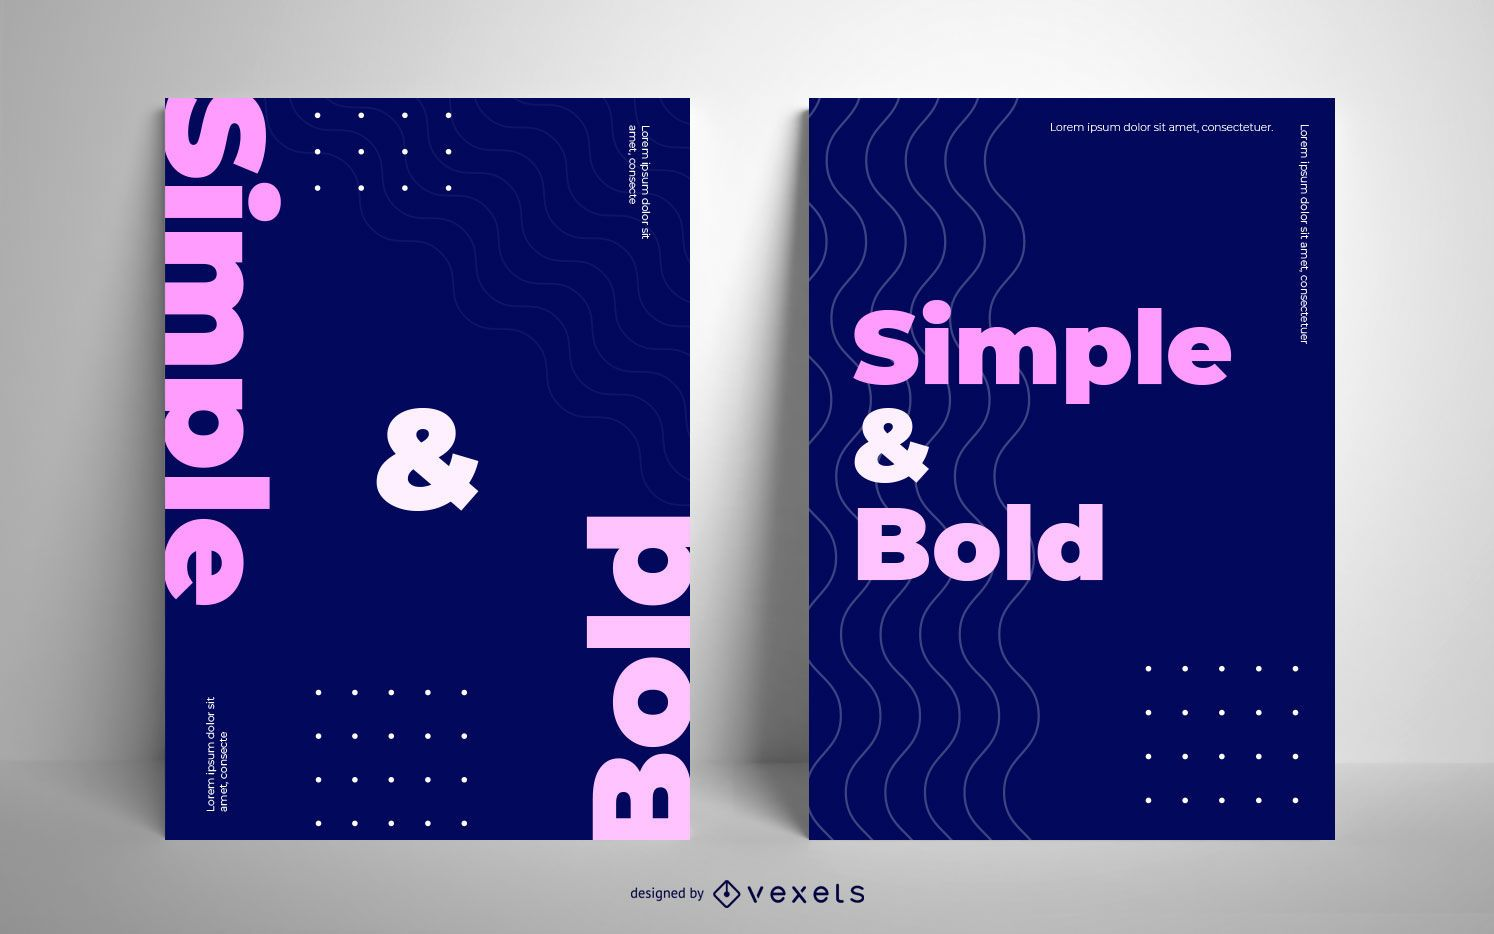 Simple and bold poster design